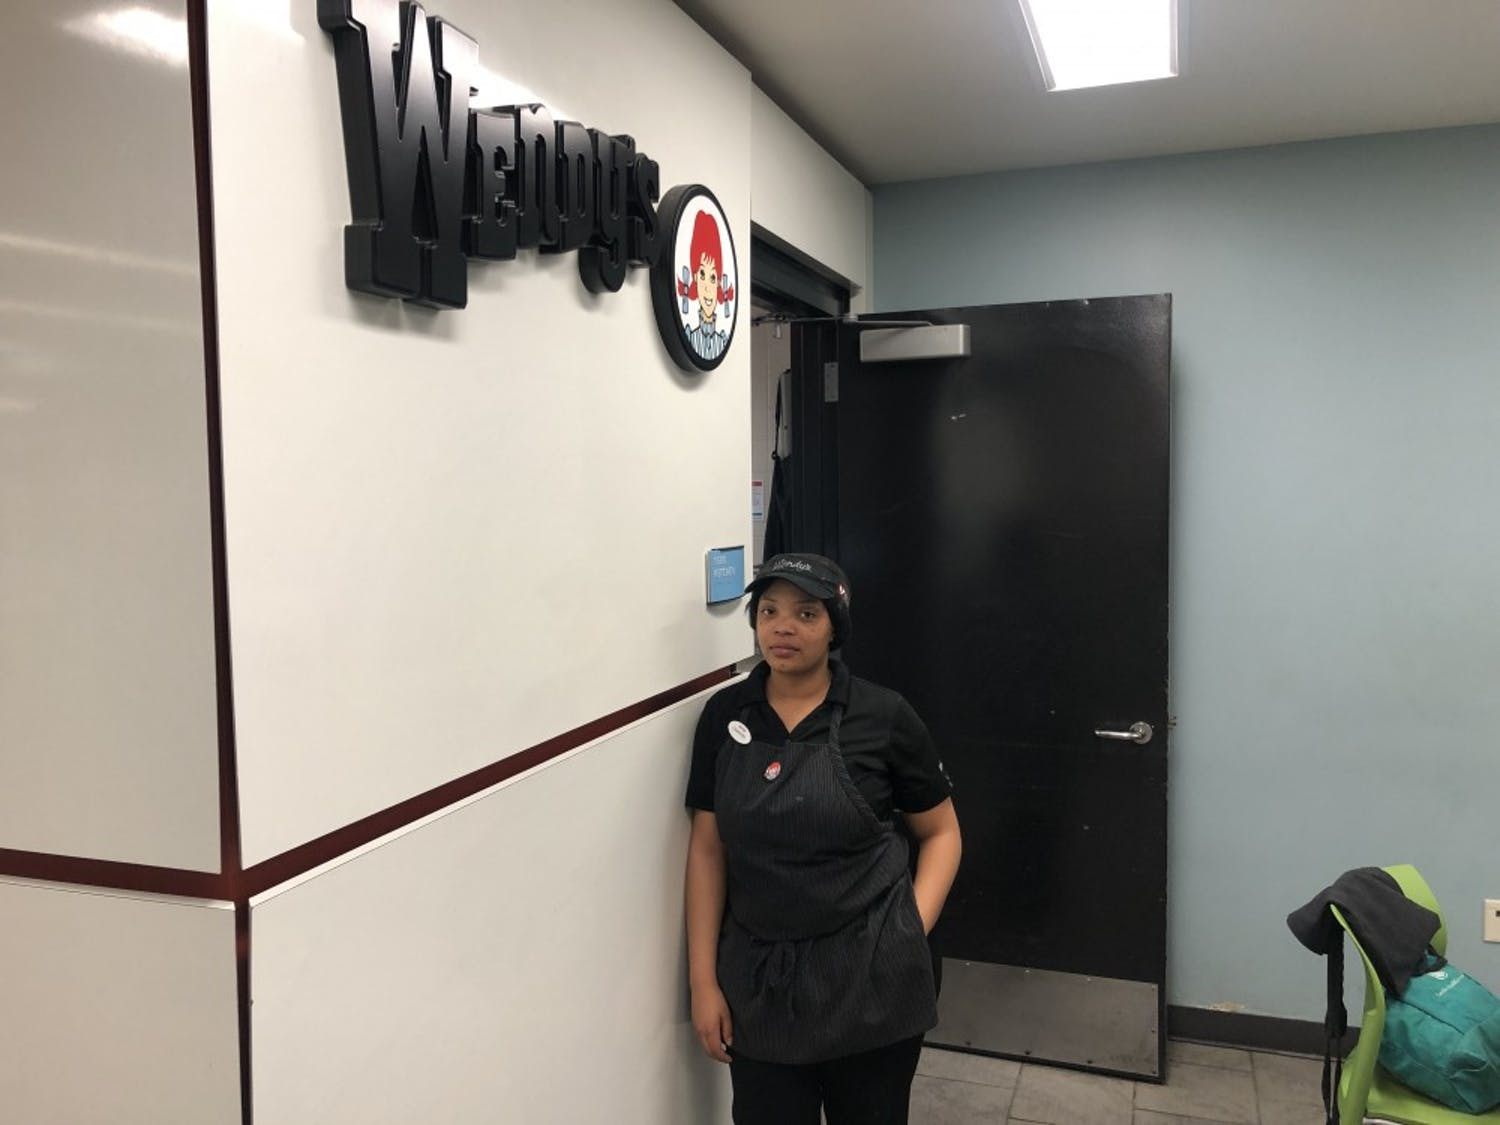 Wendy's night shift employee, Chantel Benjamin said she would have to look for another job because of the weeknight parking fee.